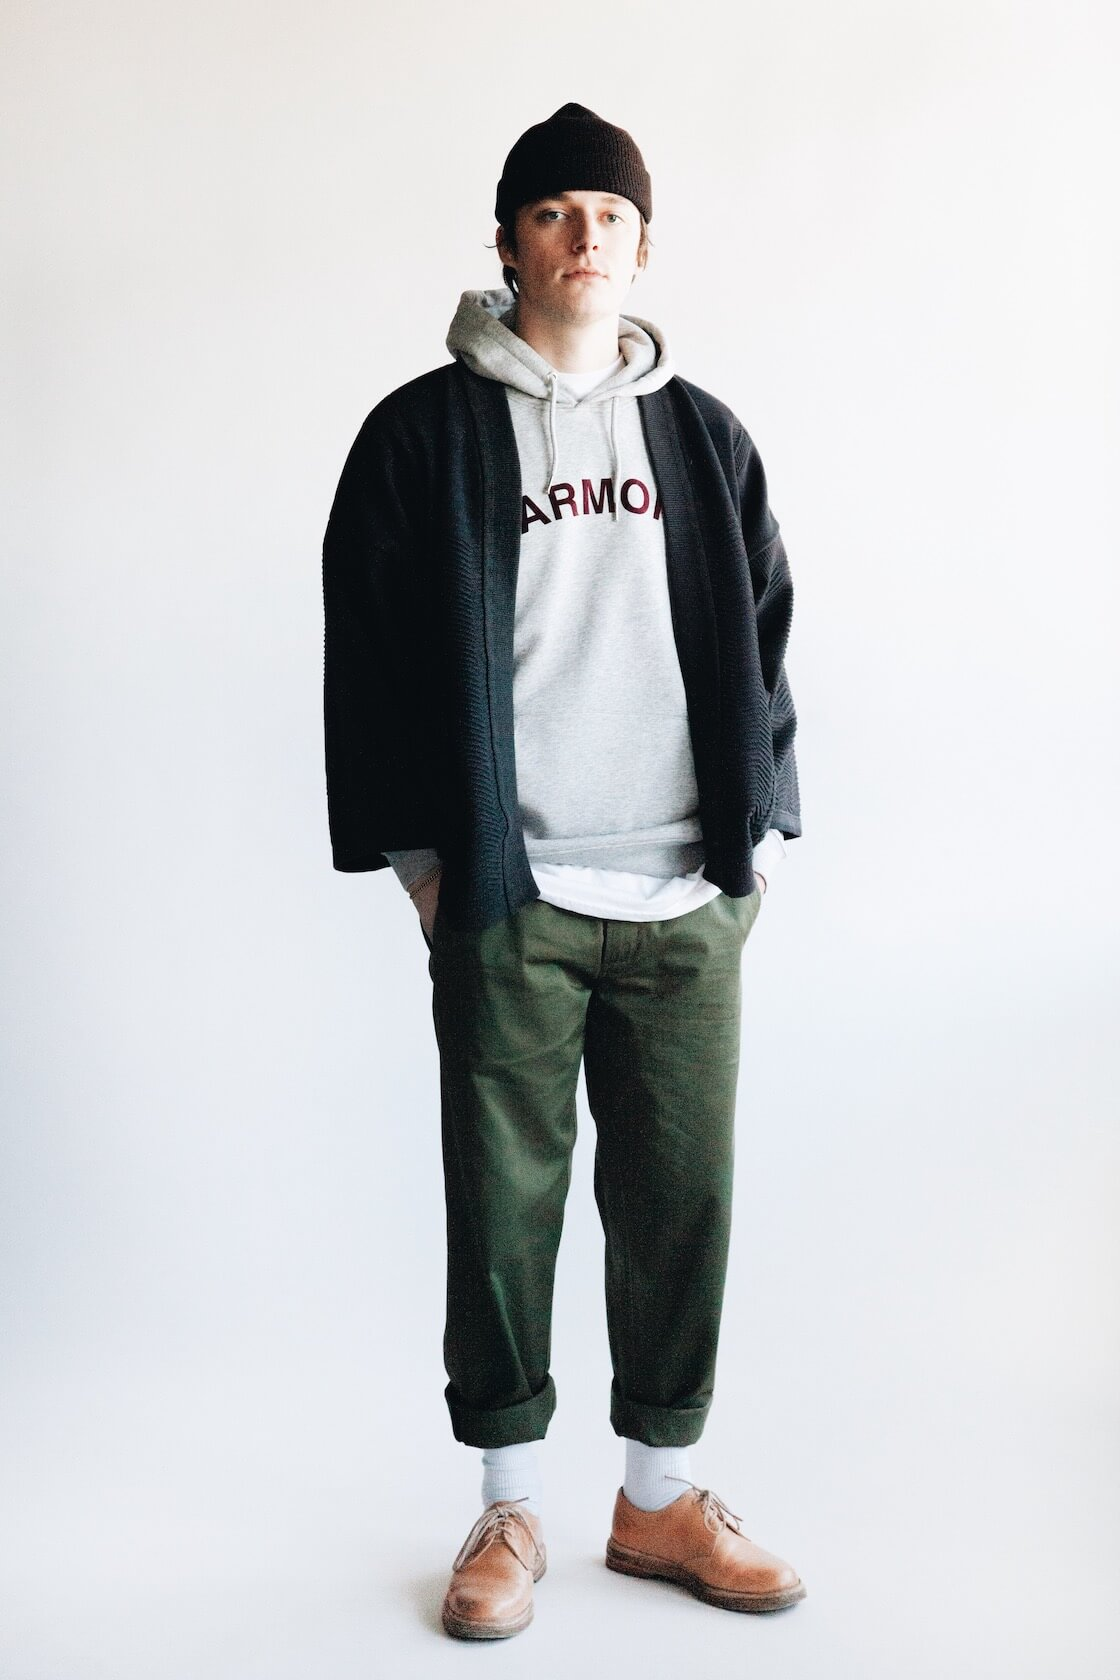 Shunto Hanten Knit from Yashiki, Sany Velour Sweatshirt from Harmony, Military Chinos from Universal Works and MIP-21's from Hender Scheme on body